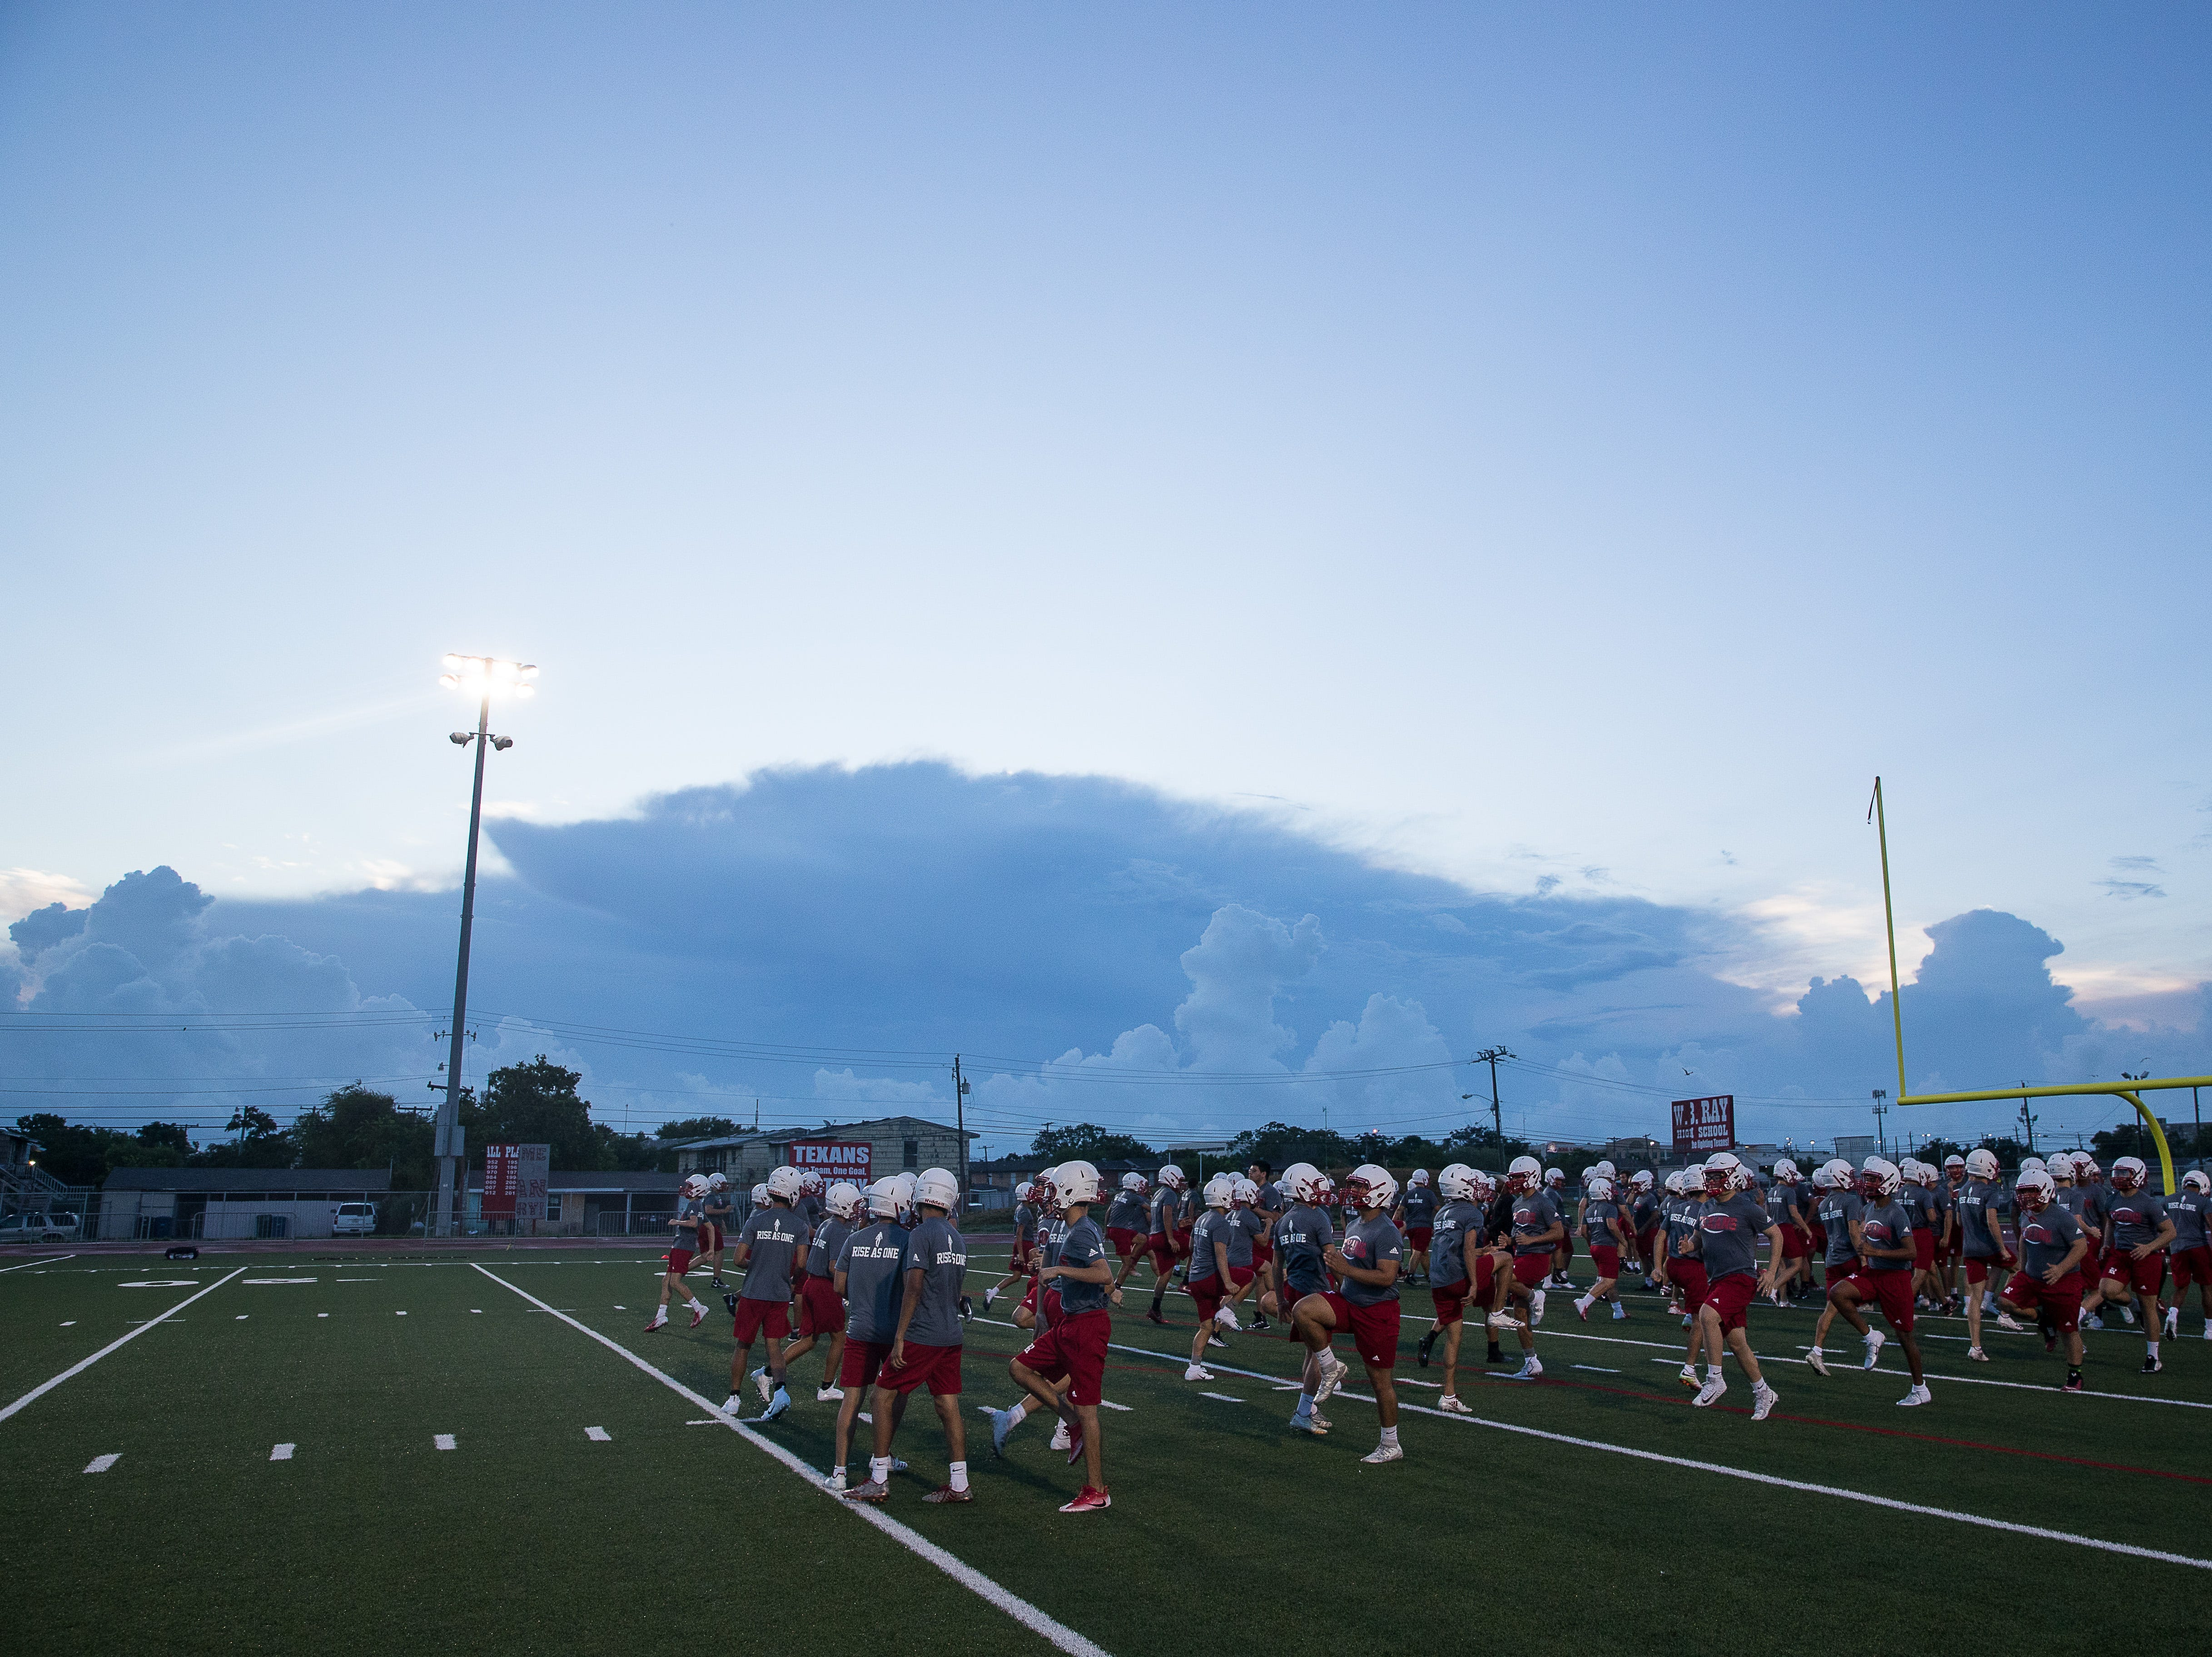 Ray football players warm up on the first day of practice for the 2018 season at Ray High School on Monday, Aug. 6, 2018.